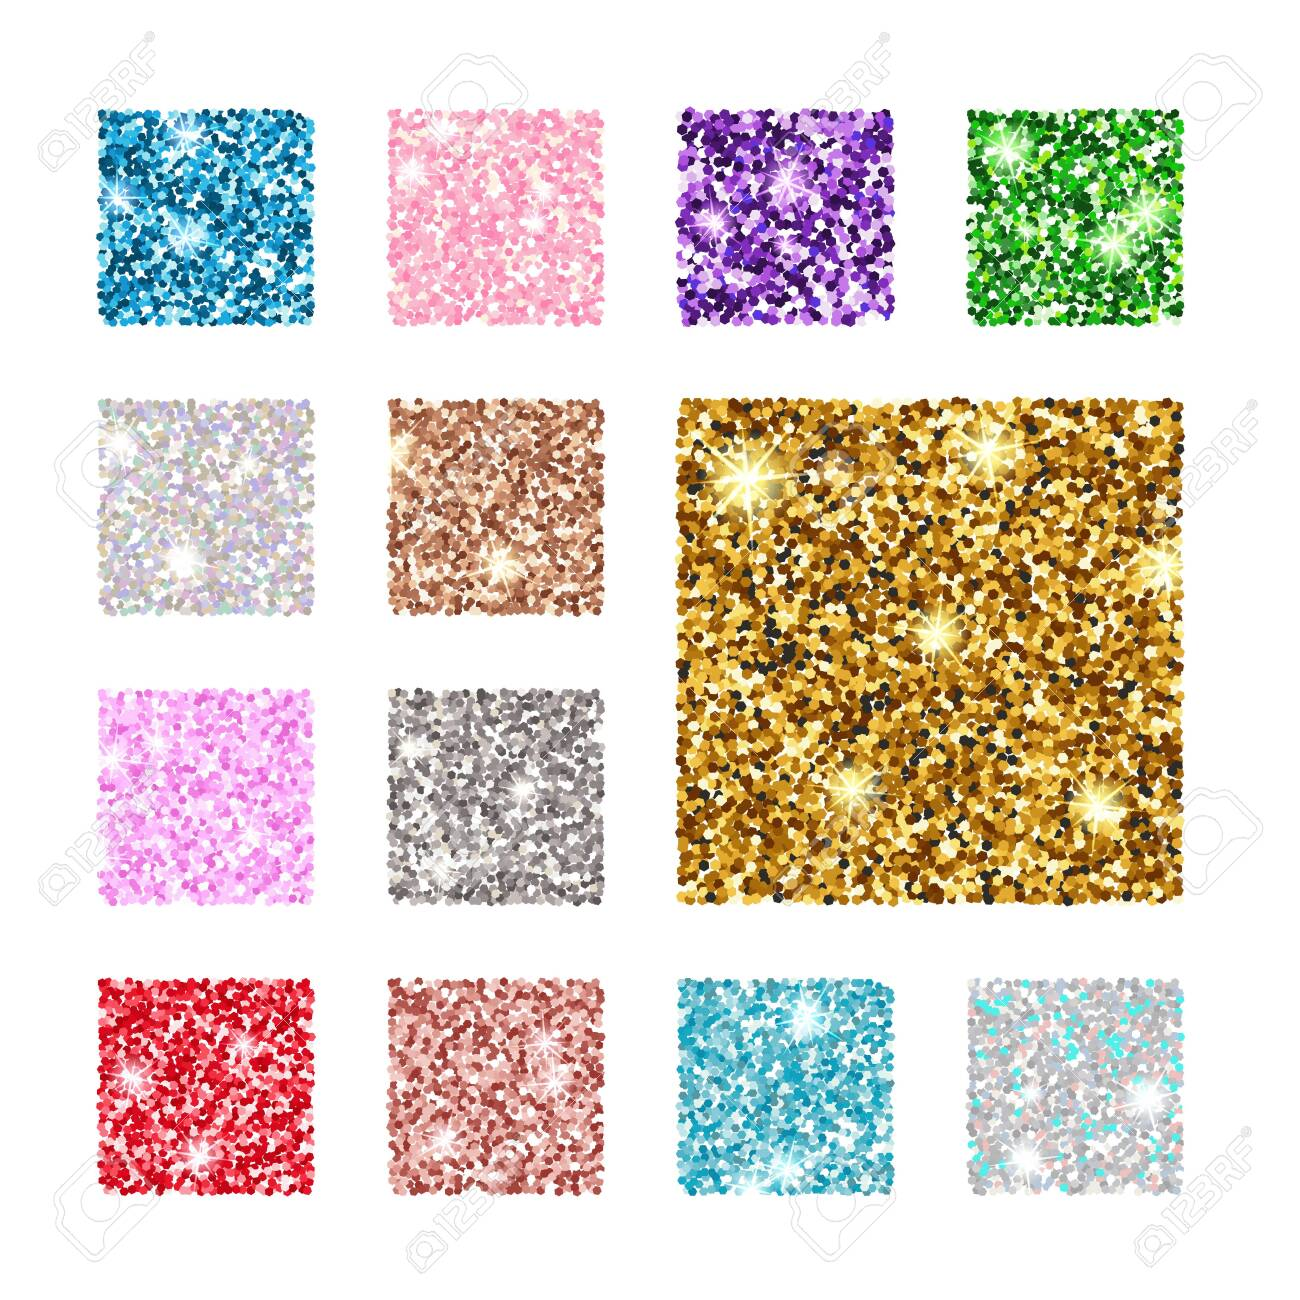 Vector illustration. Set square color glitter texture pattern. Gold, silver, red, pink, blue green purple - 132063112